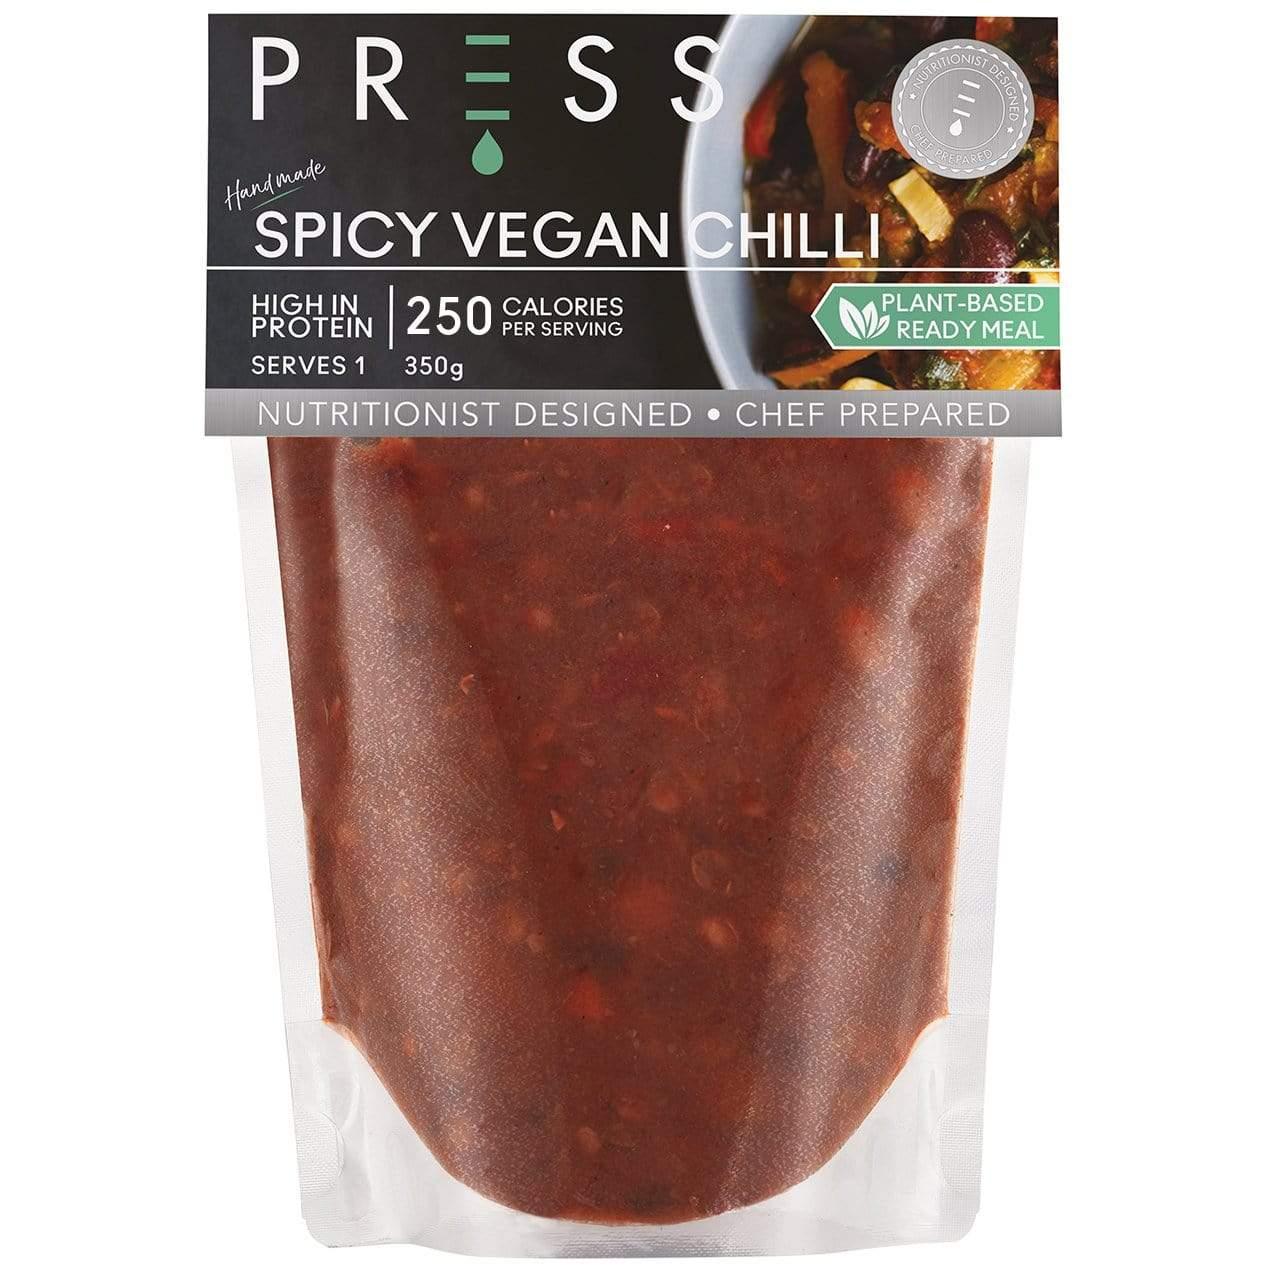 Spicy Vegan Chilli - PRESS London